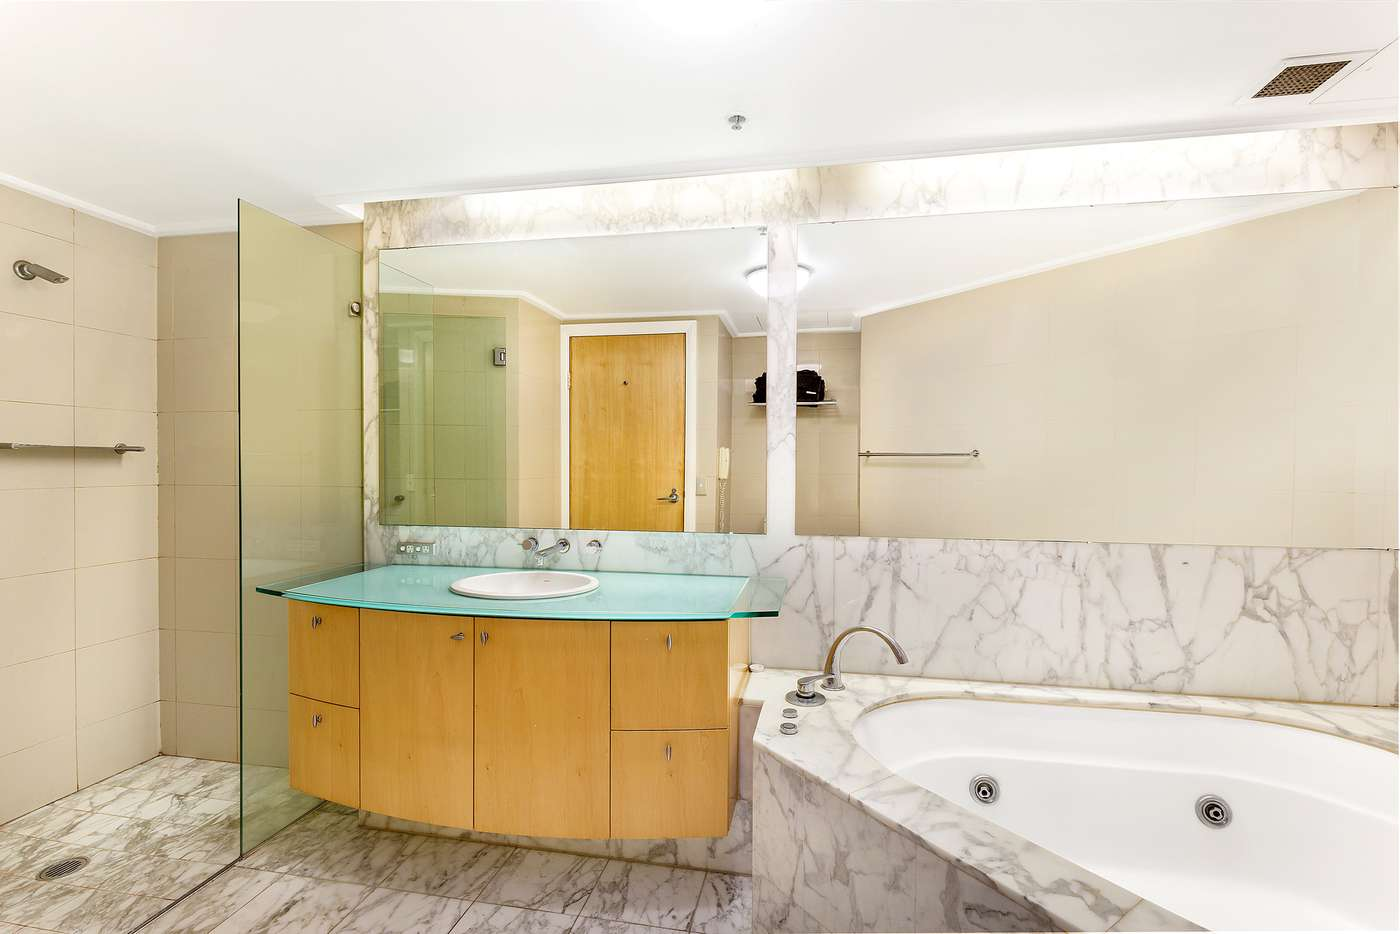 Sixth view of Homely apartment listing, 413/61 Macquarie Street, Sydney NSW 2000